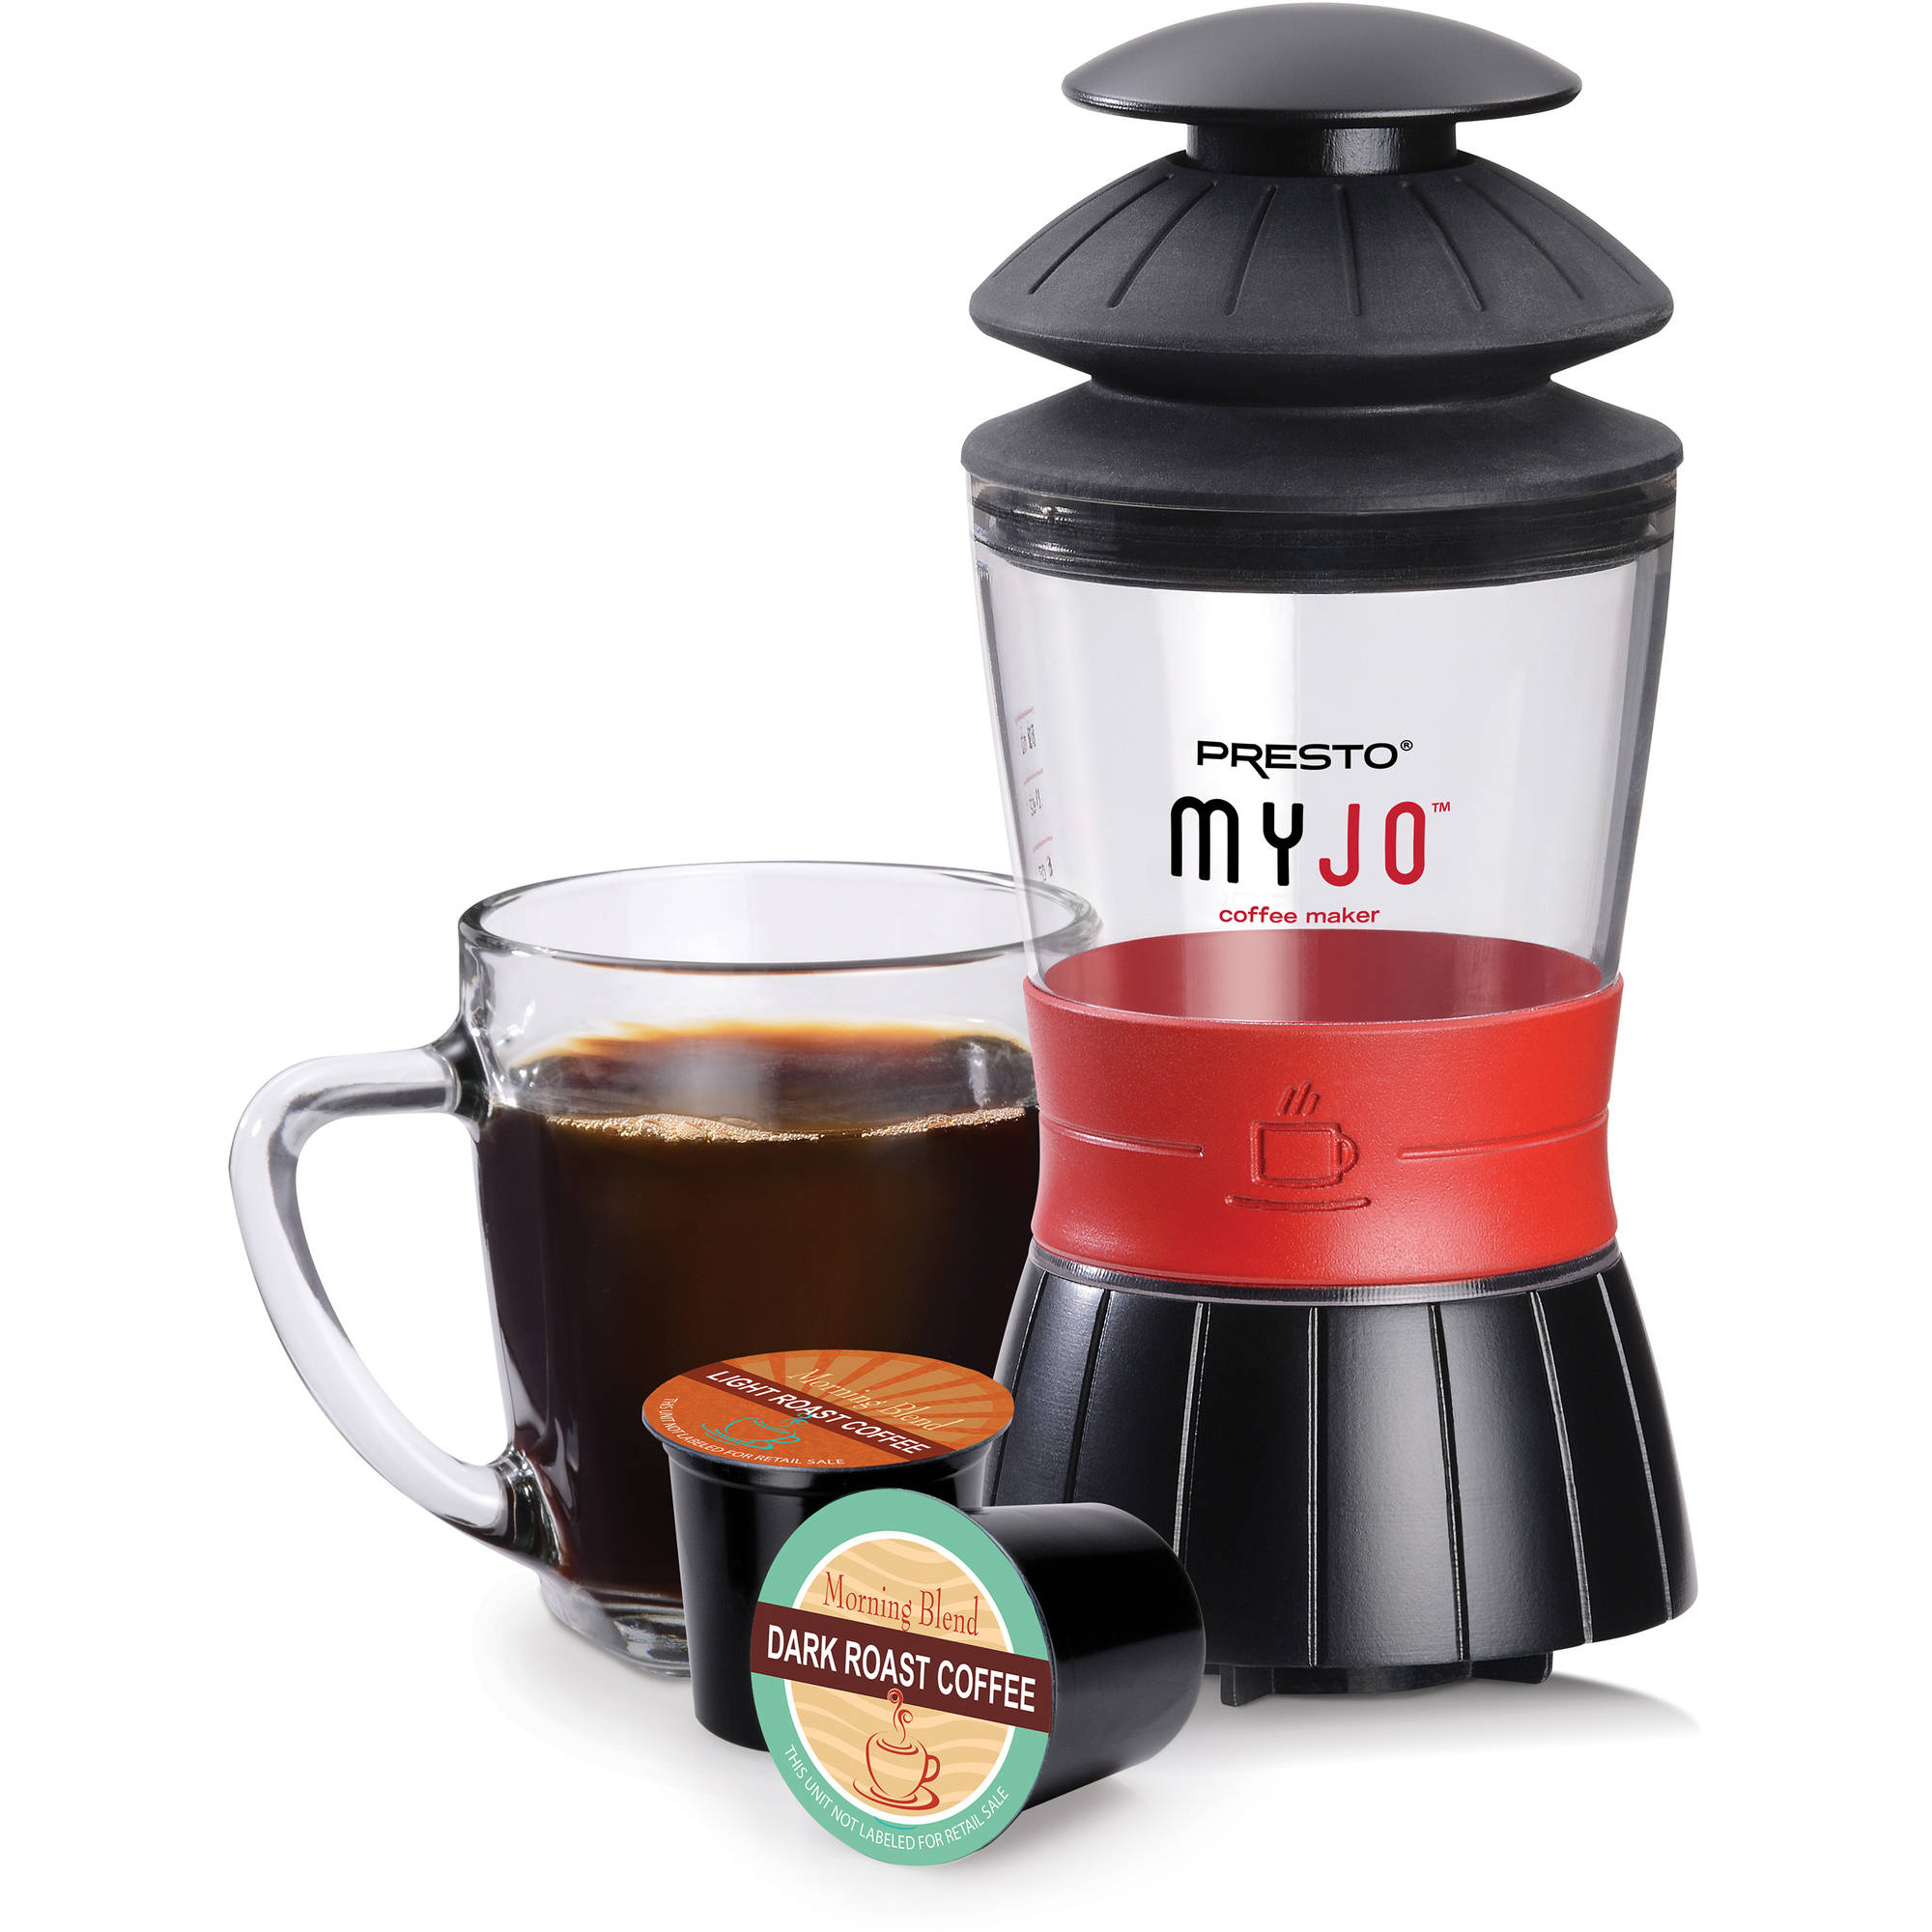 Presto MyJo™ single cup coffee maker 02835